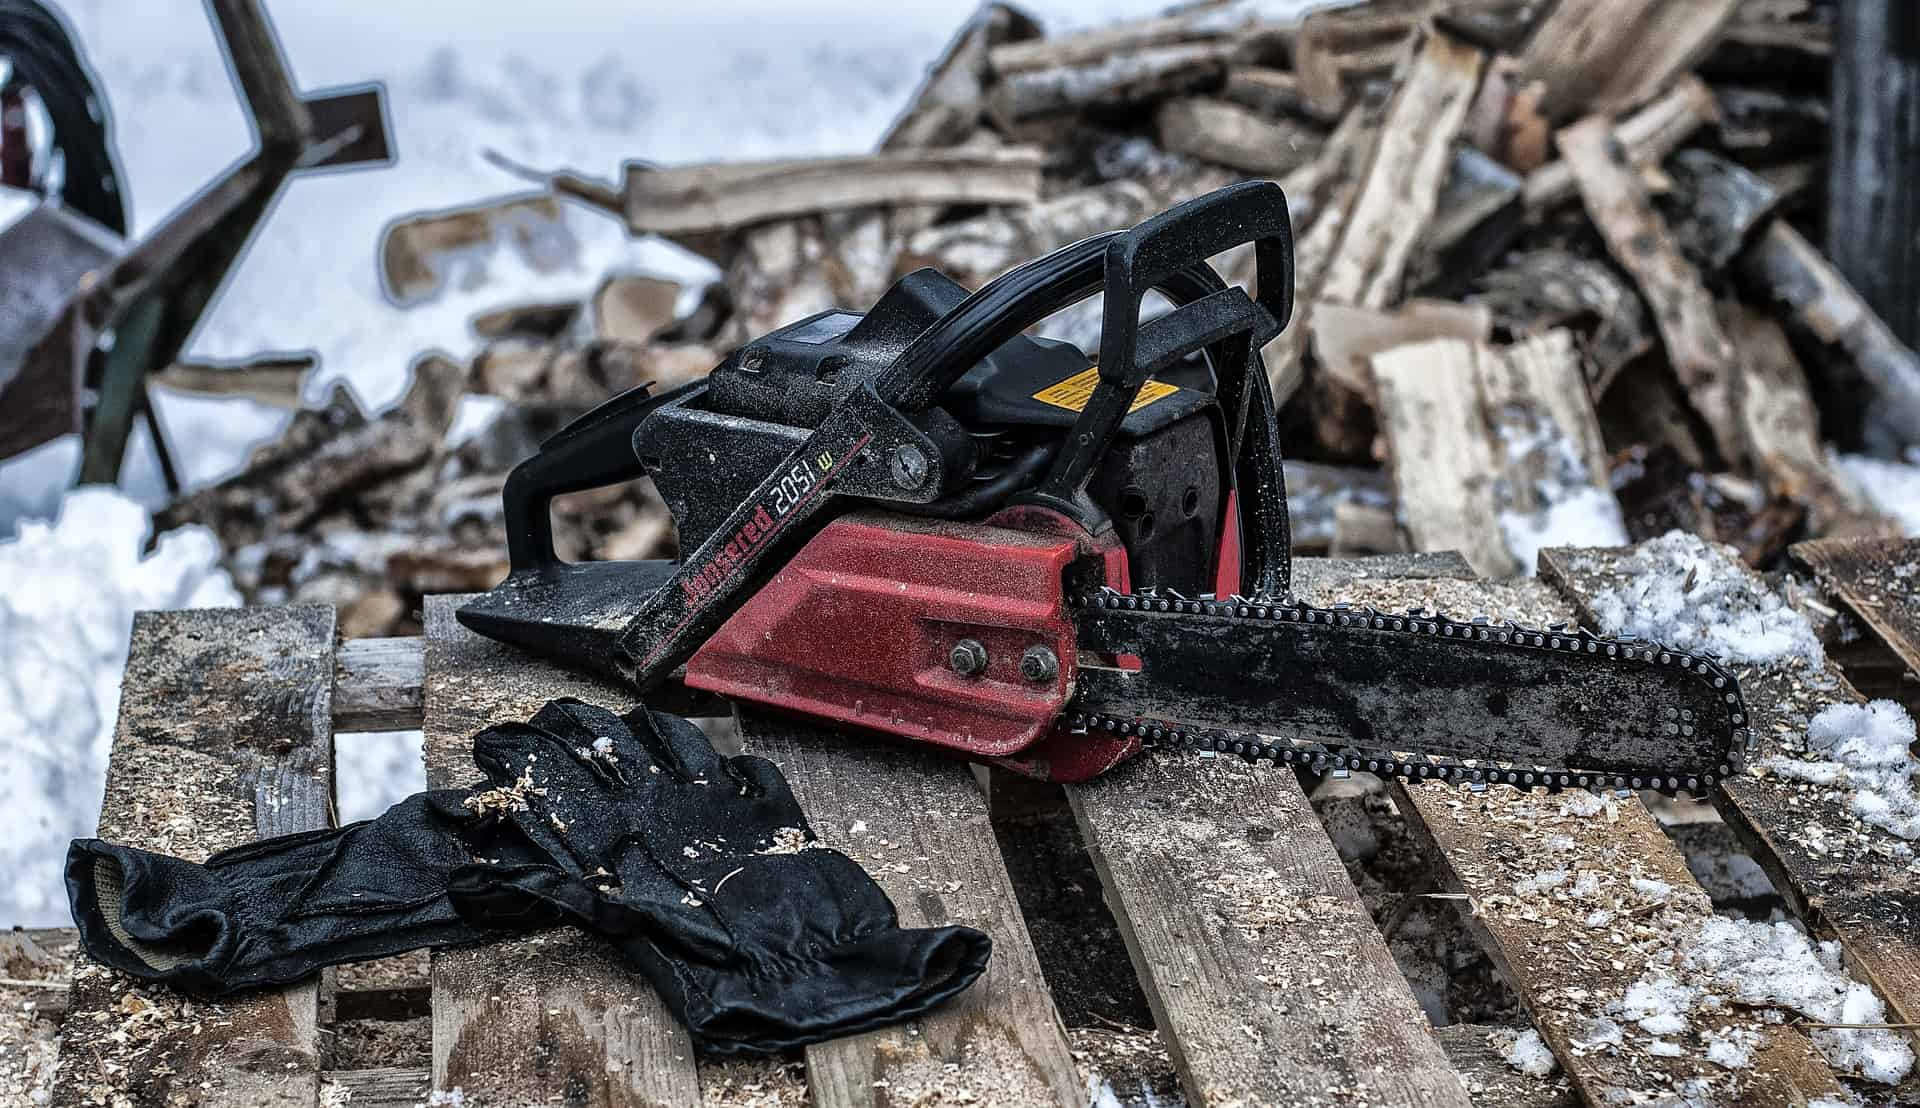 The Best Electric Chainsaw: Shopping Guide and Recommendations (09/21)